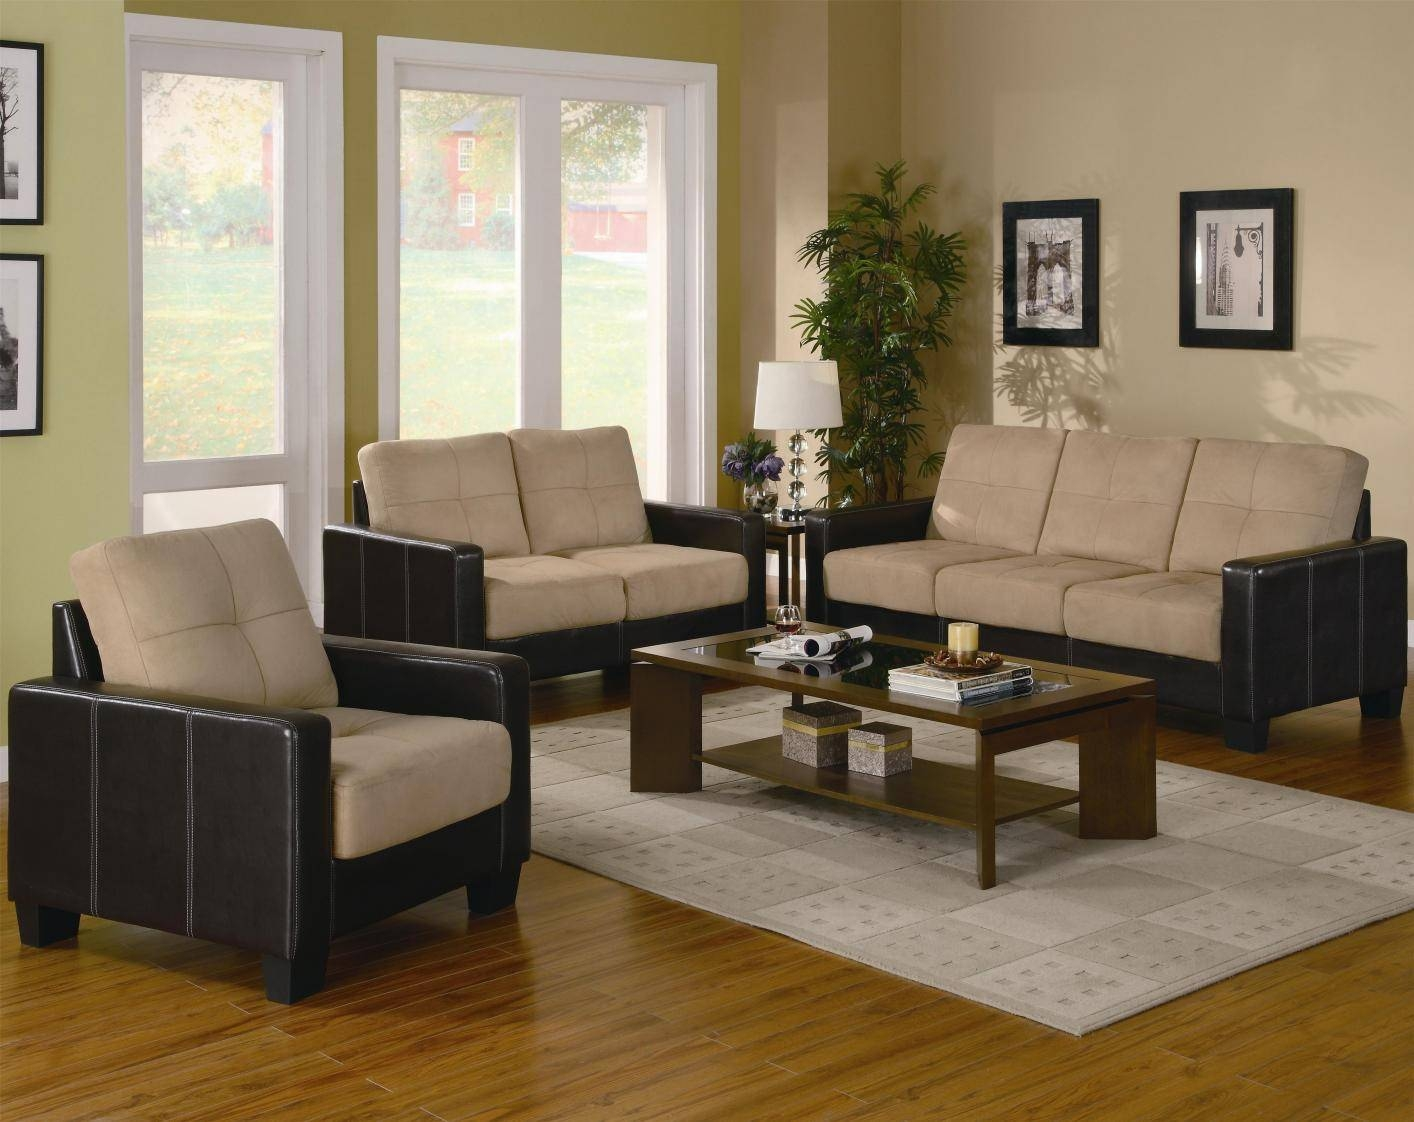 Coaster 500100 Beige Leather Sofa Loveseat And Chair Set – Steal A Intended For Sofa Loveseat And Chair Set (View 10 of 30)